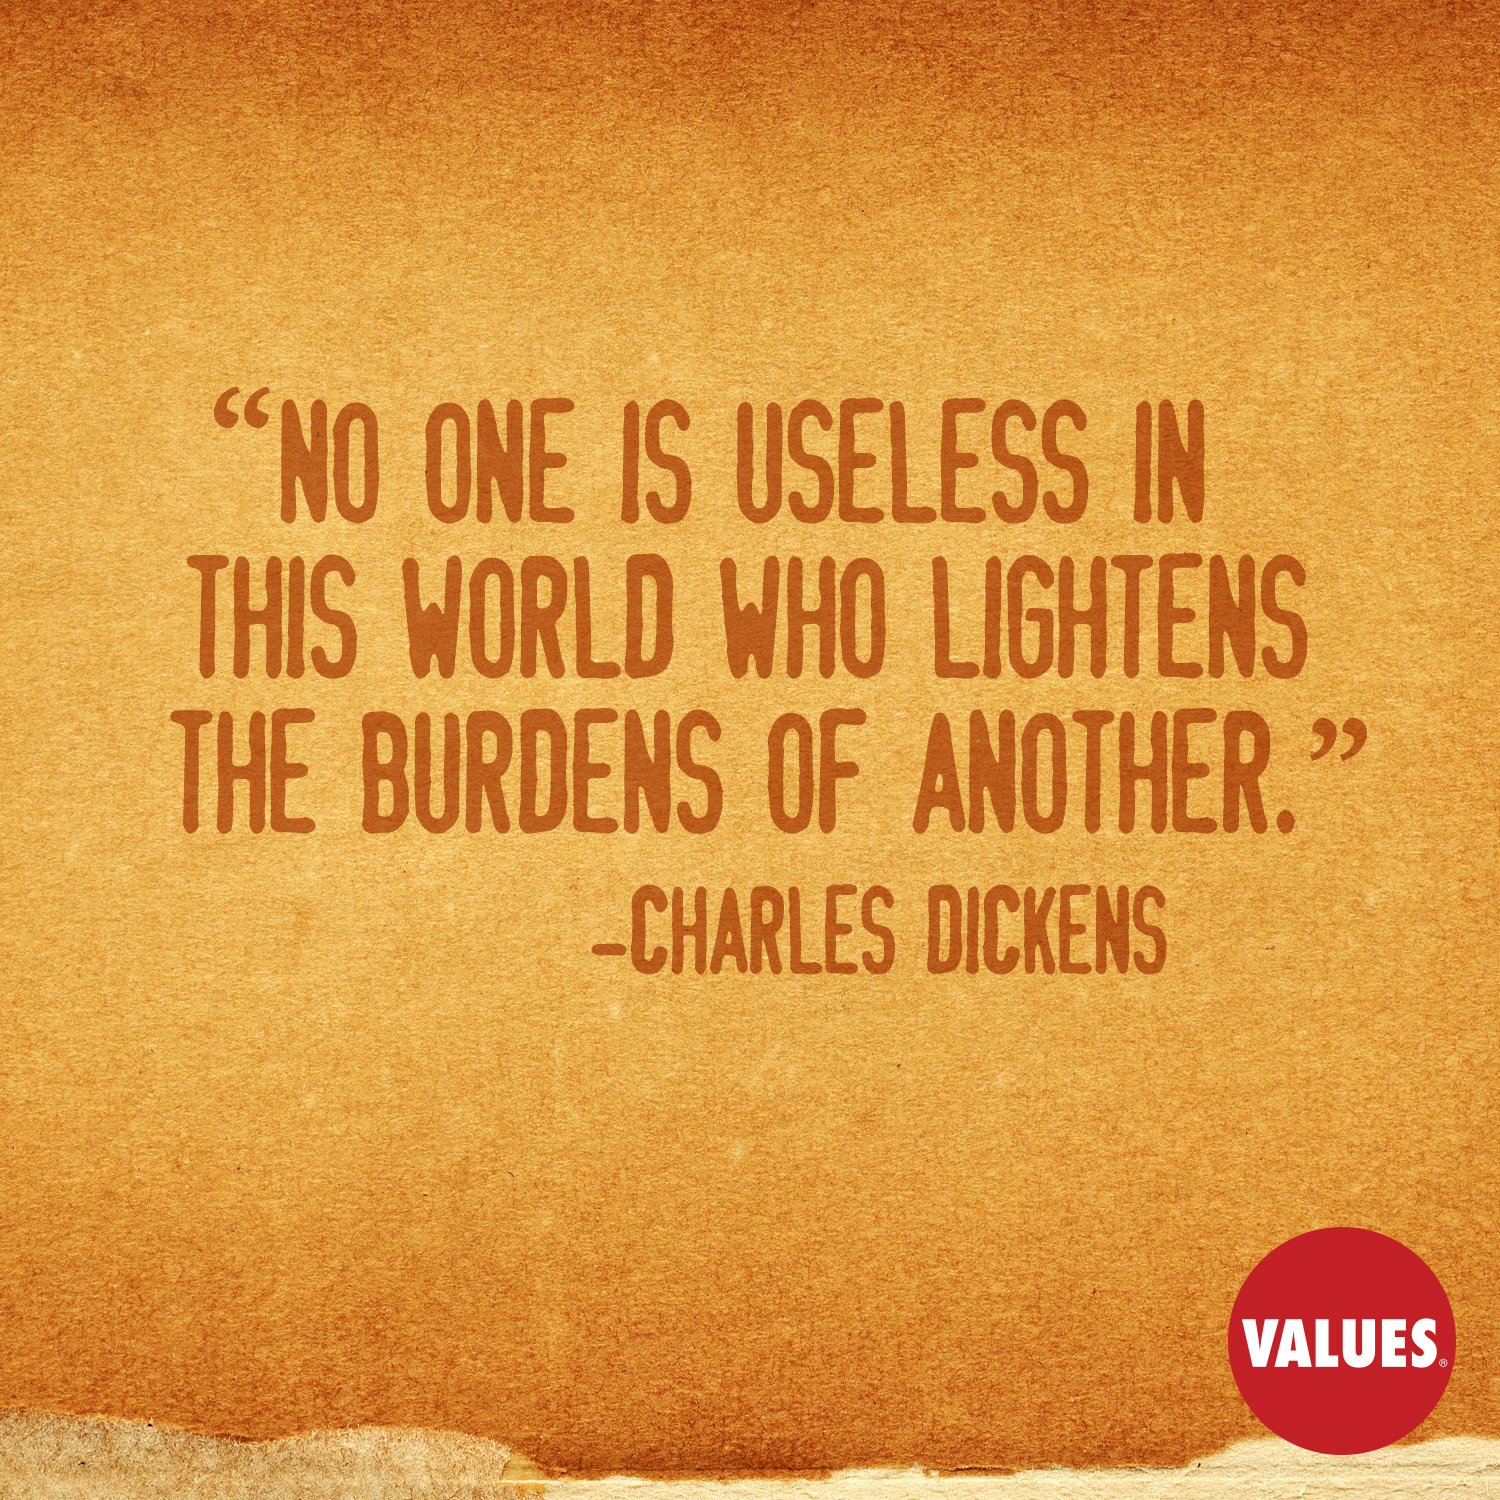 No one is useless in this world who lightens the burdens of another. —Charles Dickens